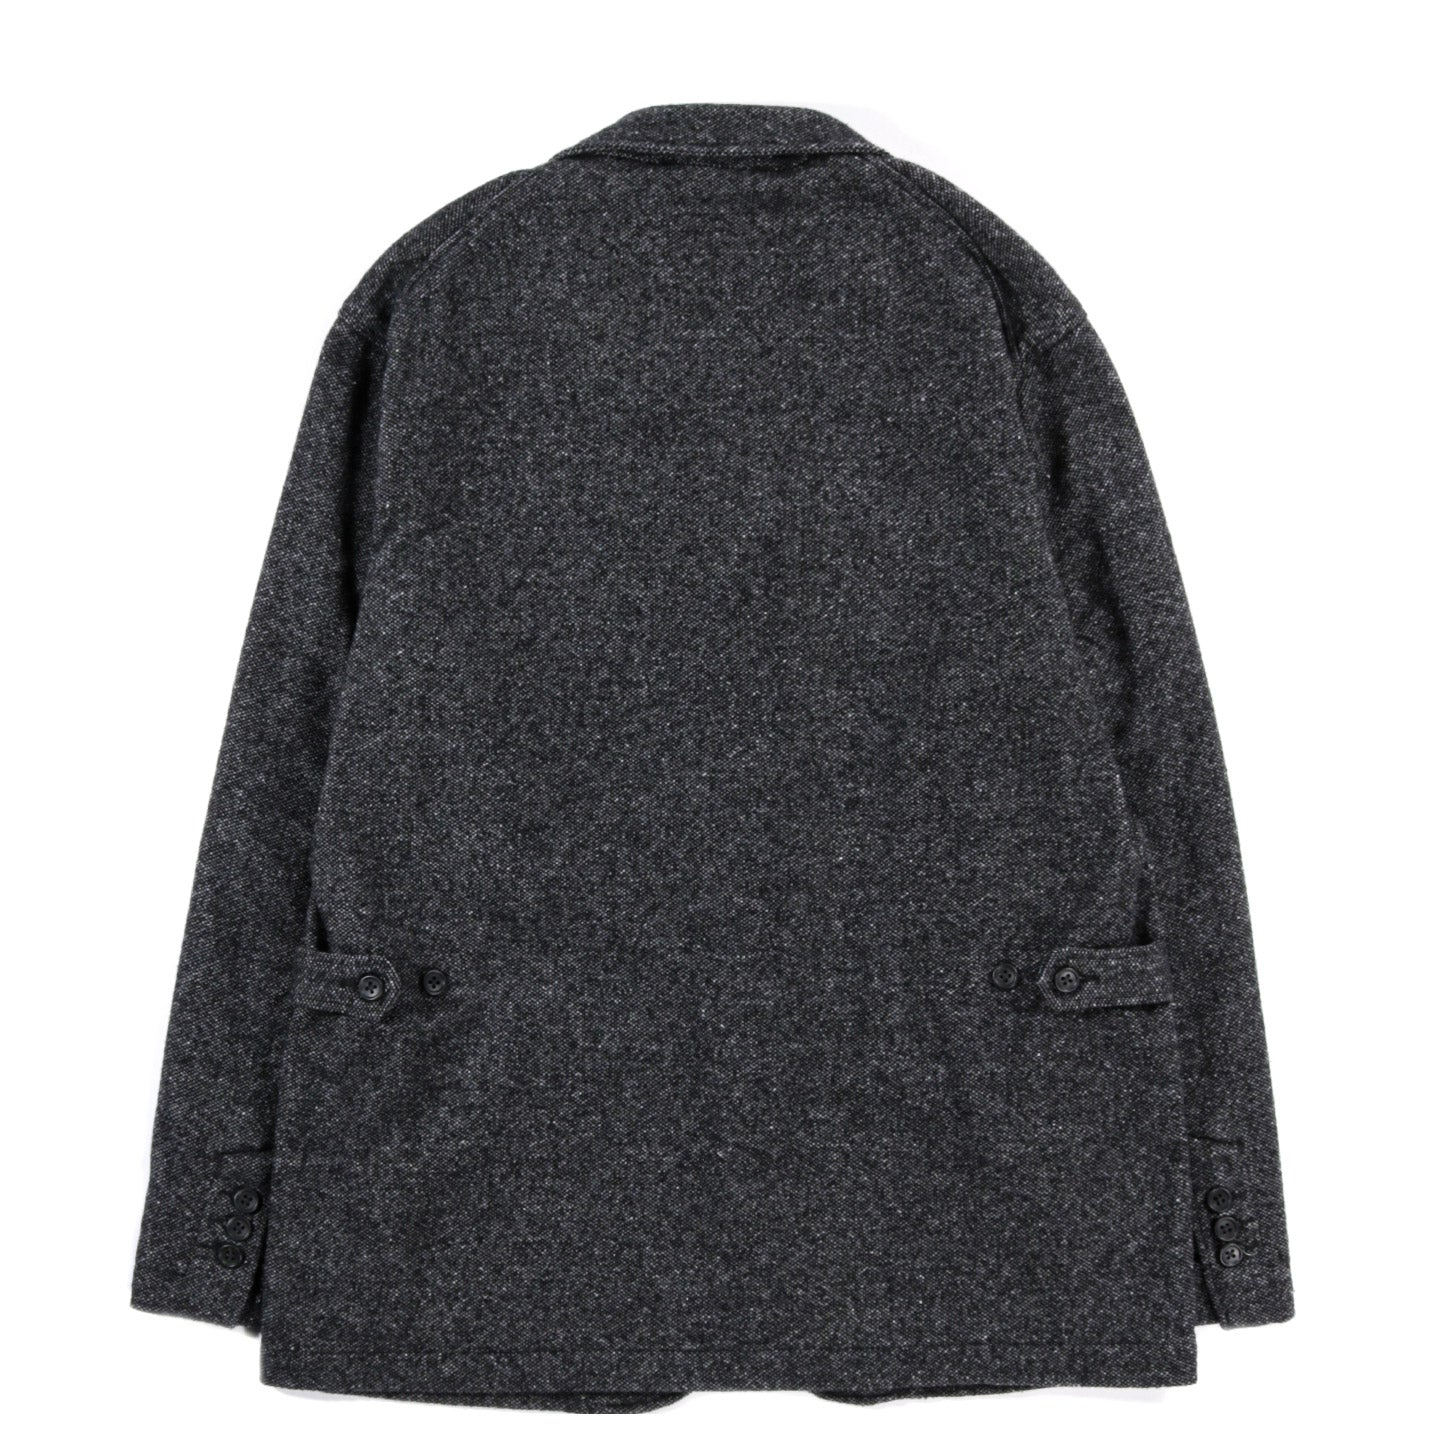 ENGINEERED GARMENTS LOITER JACKET GREY WOOL BLEND HOMESPUN